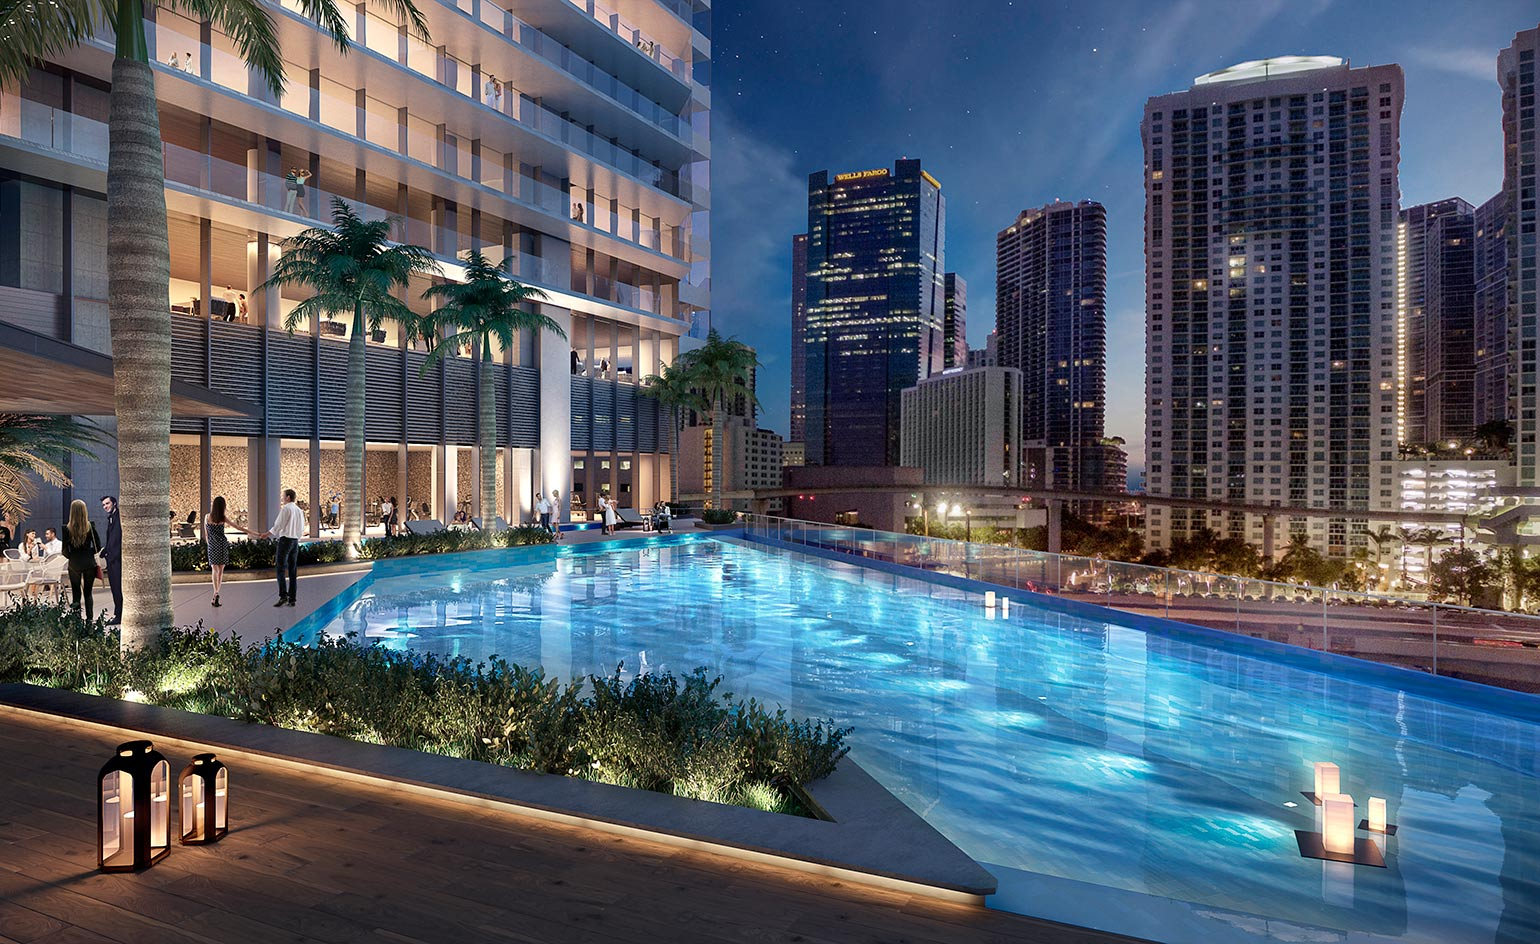 Rafael vi oly s one river point in downtown miami wallpaper for Riverpointe